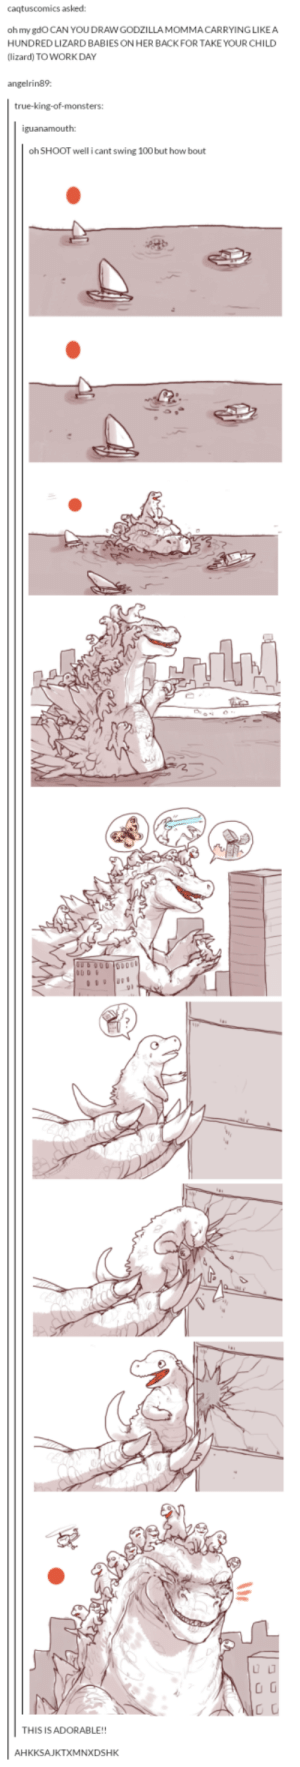 Anaconda, Omg, and Tumblr: caqtuscomics asked:  oh my gdoCAN YOU DRAWGODZILLA MOMMA CARRYING LIKEA  HUNDRED LIZARD BABIES ON HER BACKFOR TAKE YOUR CHILD  (lizard) TOWORK DAY  angelrin89  oh SHOOT well icant swing 100 but how bout  91  THIS IS ADORABLE!!  AHKKSAJKTXMNXDSH Take your lizard to work dayomg-humor.tumblr.com